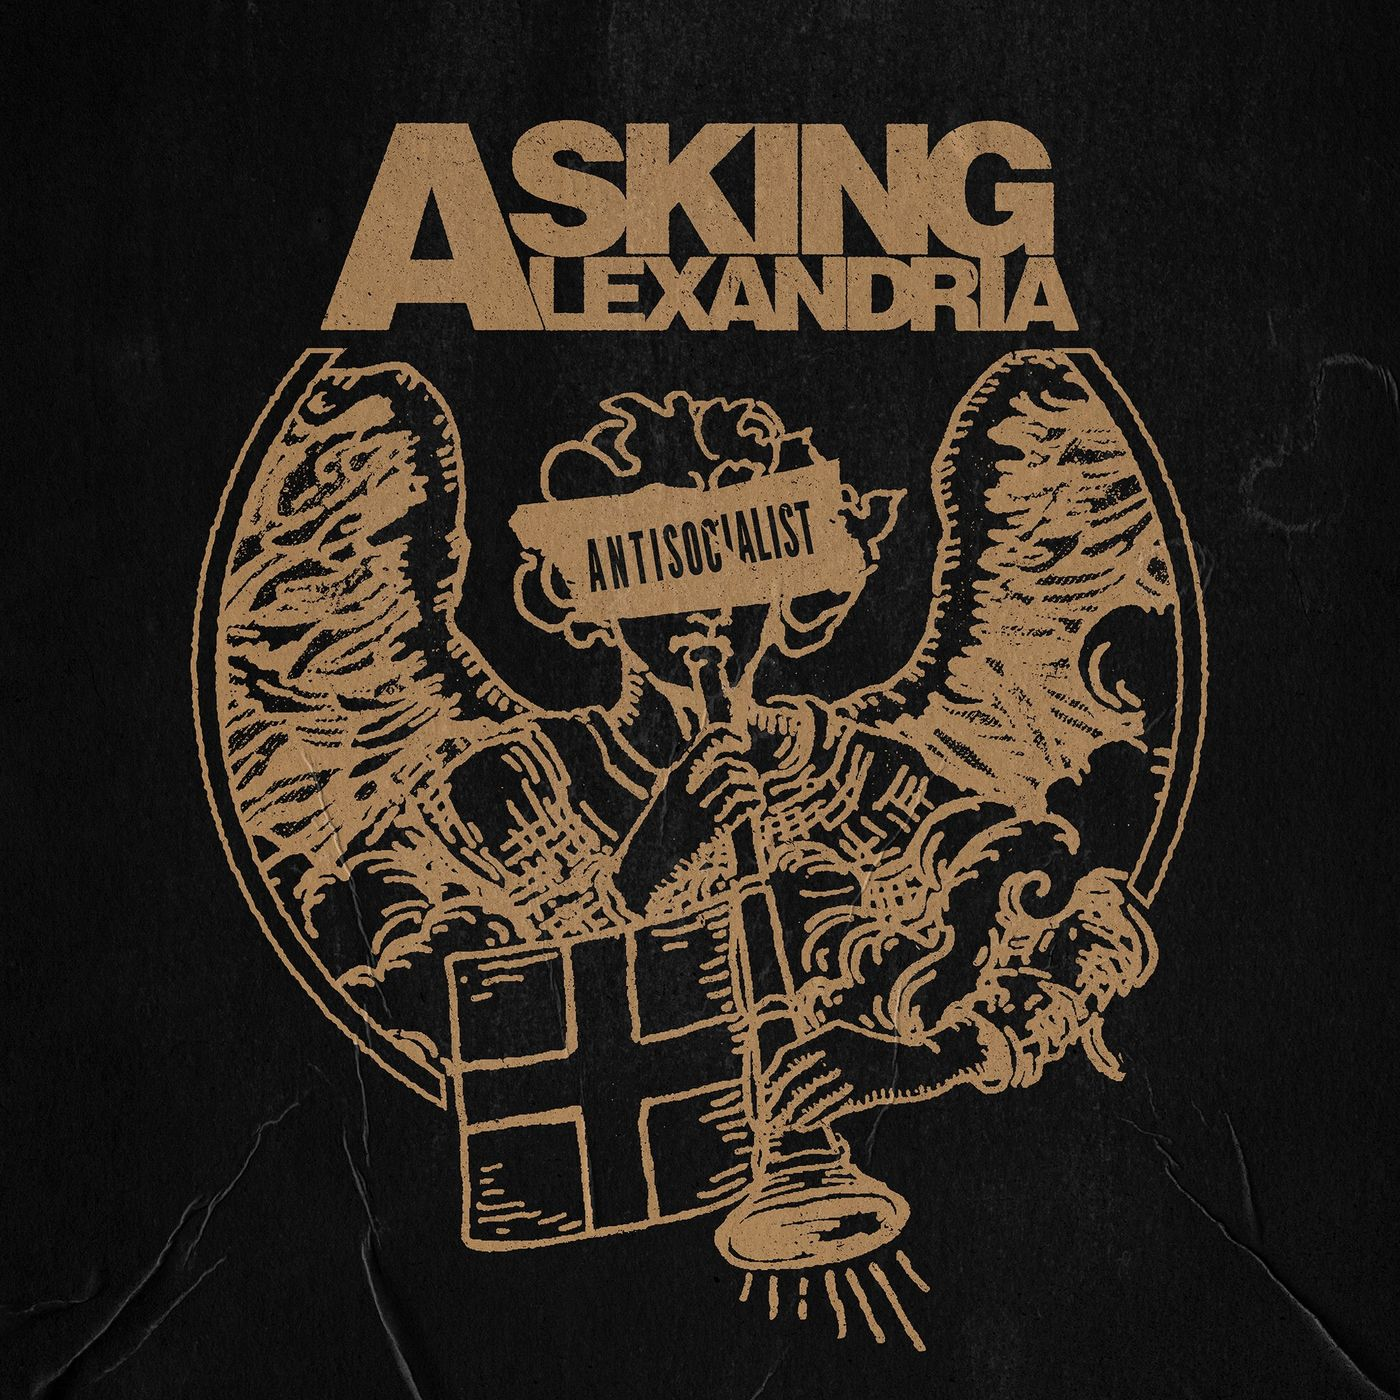 Asking Alexandria - Antisocialist (Unplugged) [single] (2020)